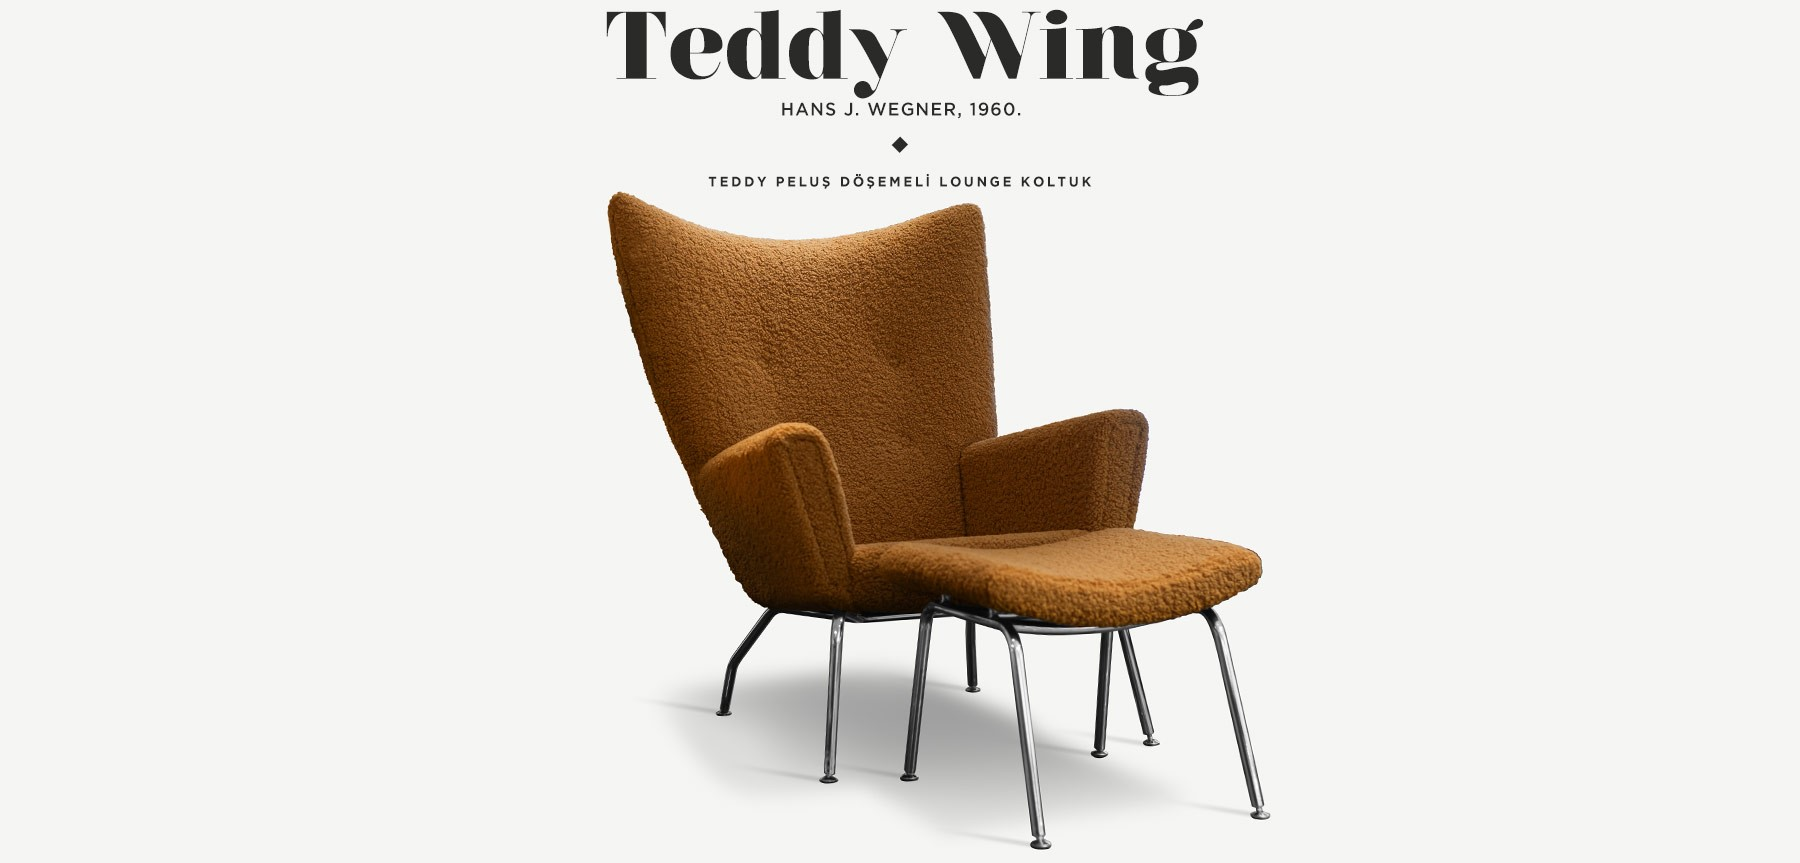 Wing Chair Teddy Edition Hardal'in resmi